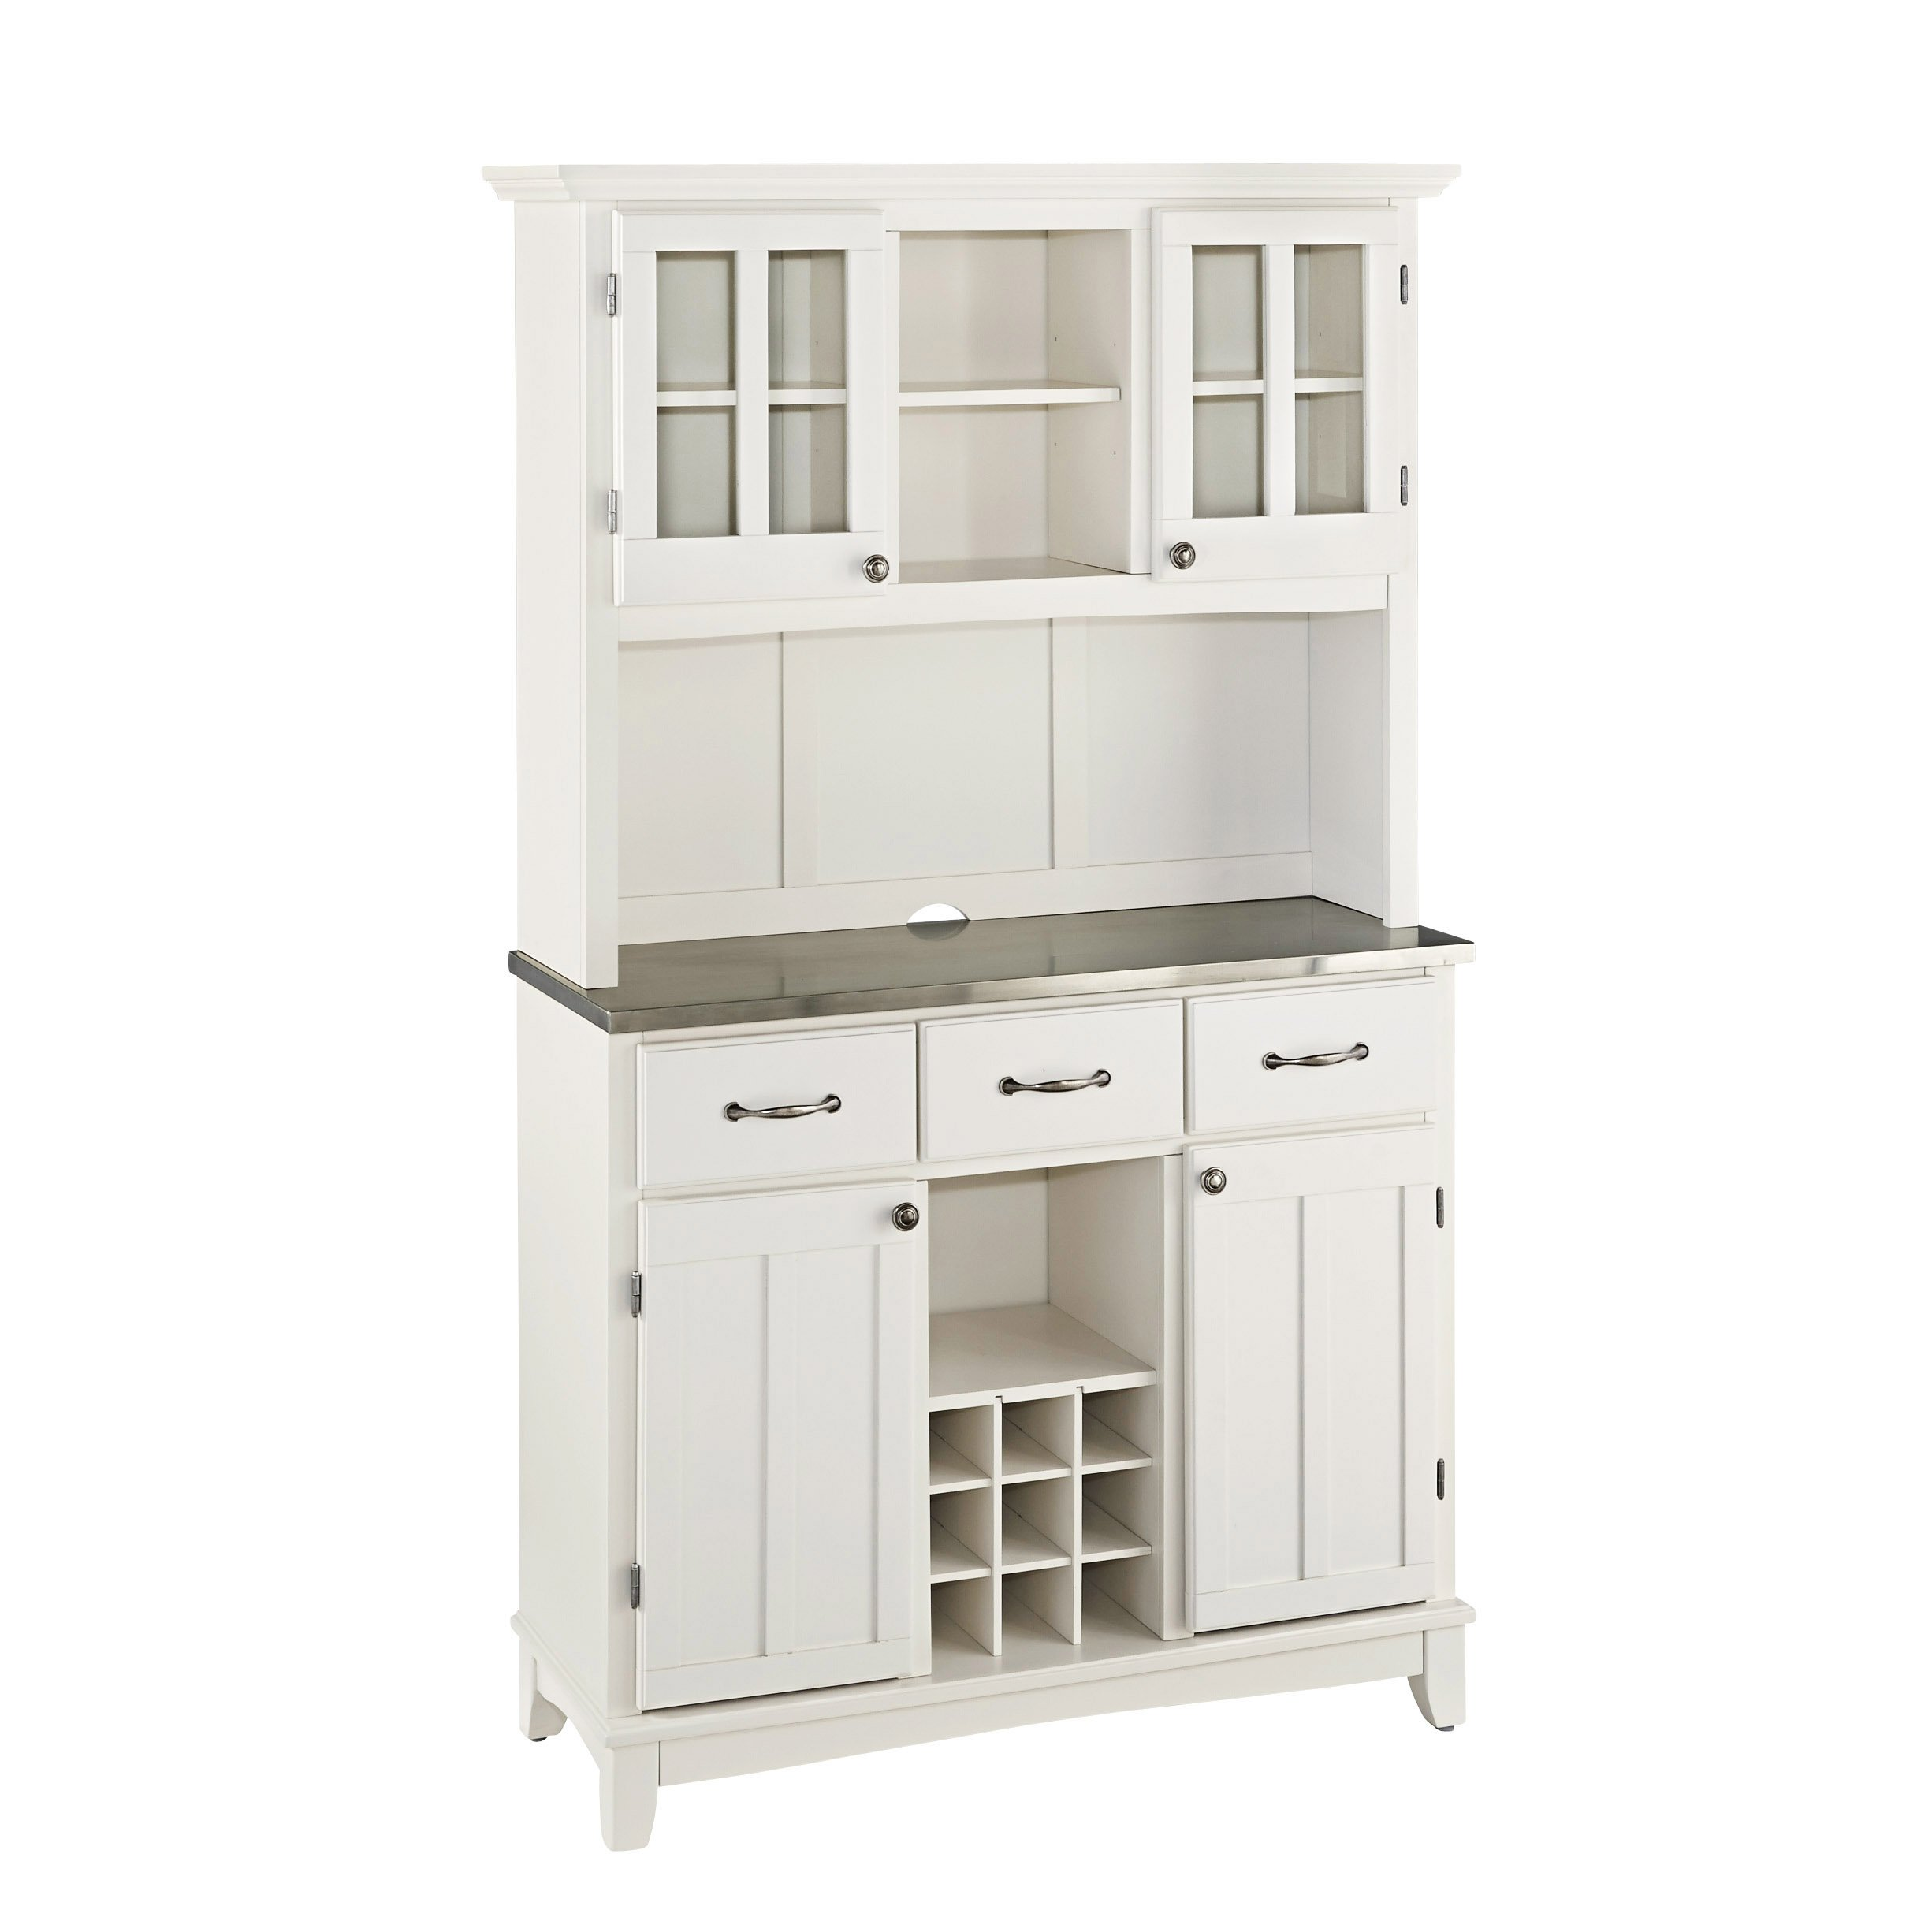 Home Styles 5100-0023-22 5001 Series Stainless Steel Top Buffet Server and Hutch, White Finish